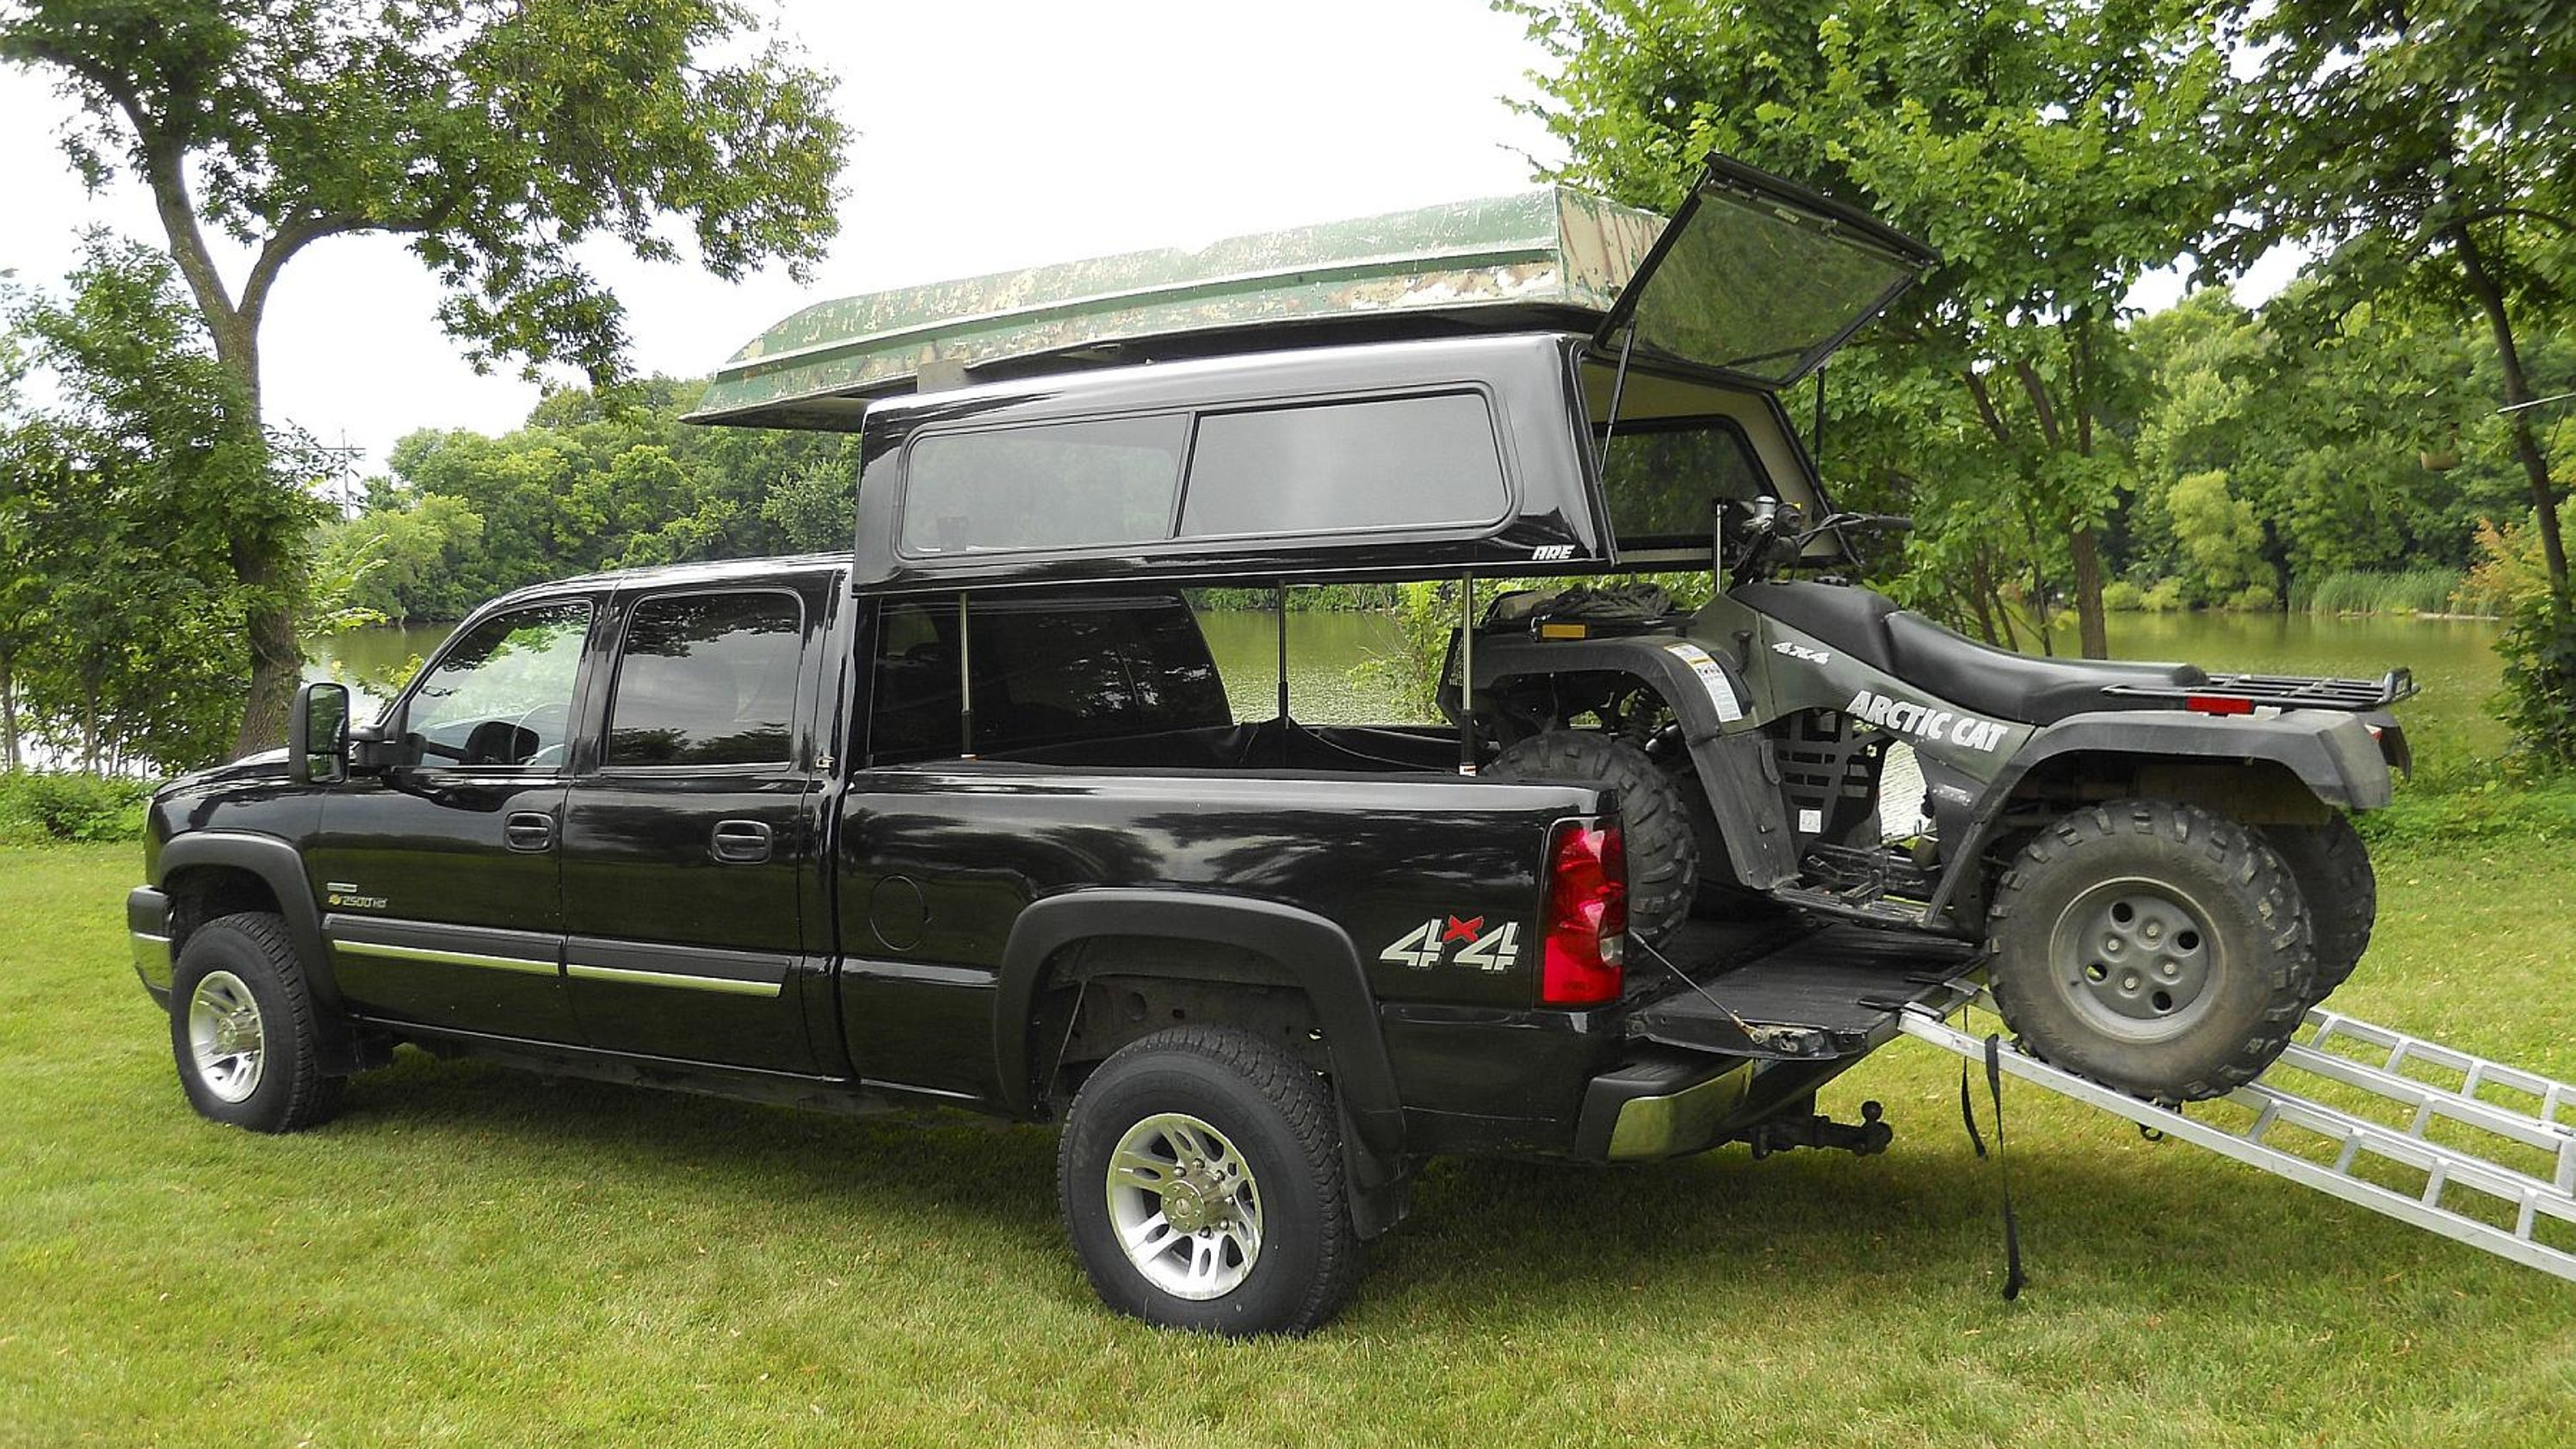 Lifted Chevy Colorado >> EZ lift lets truck bed cap rise, convert to camper